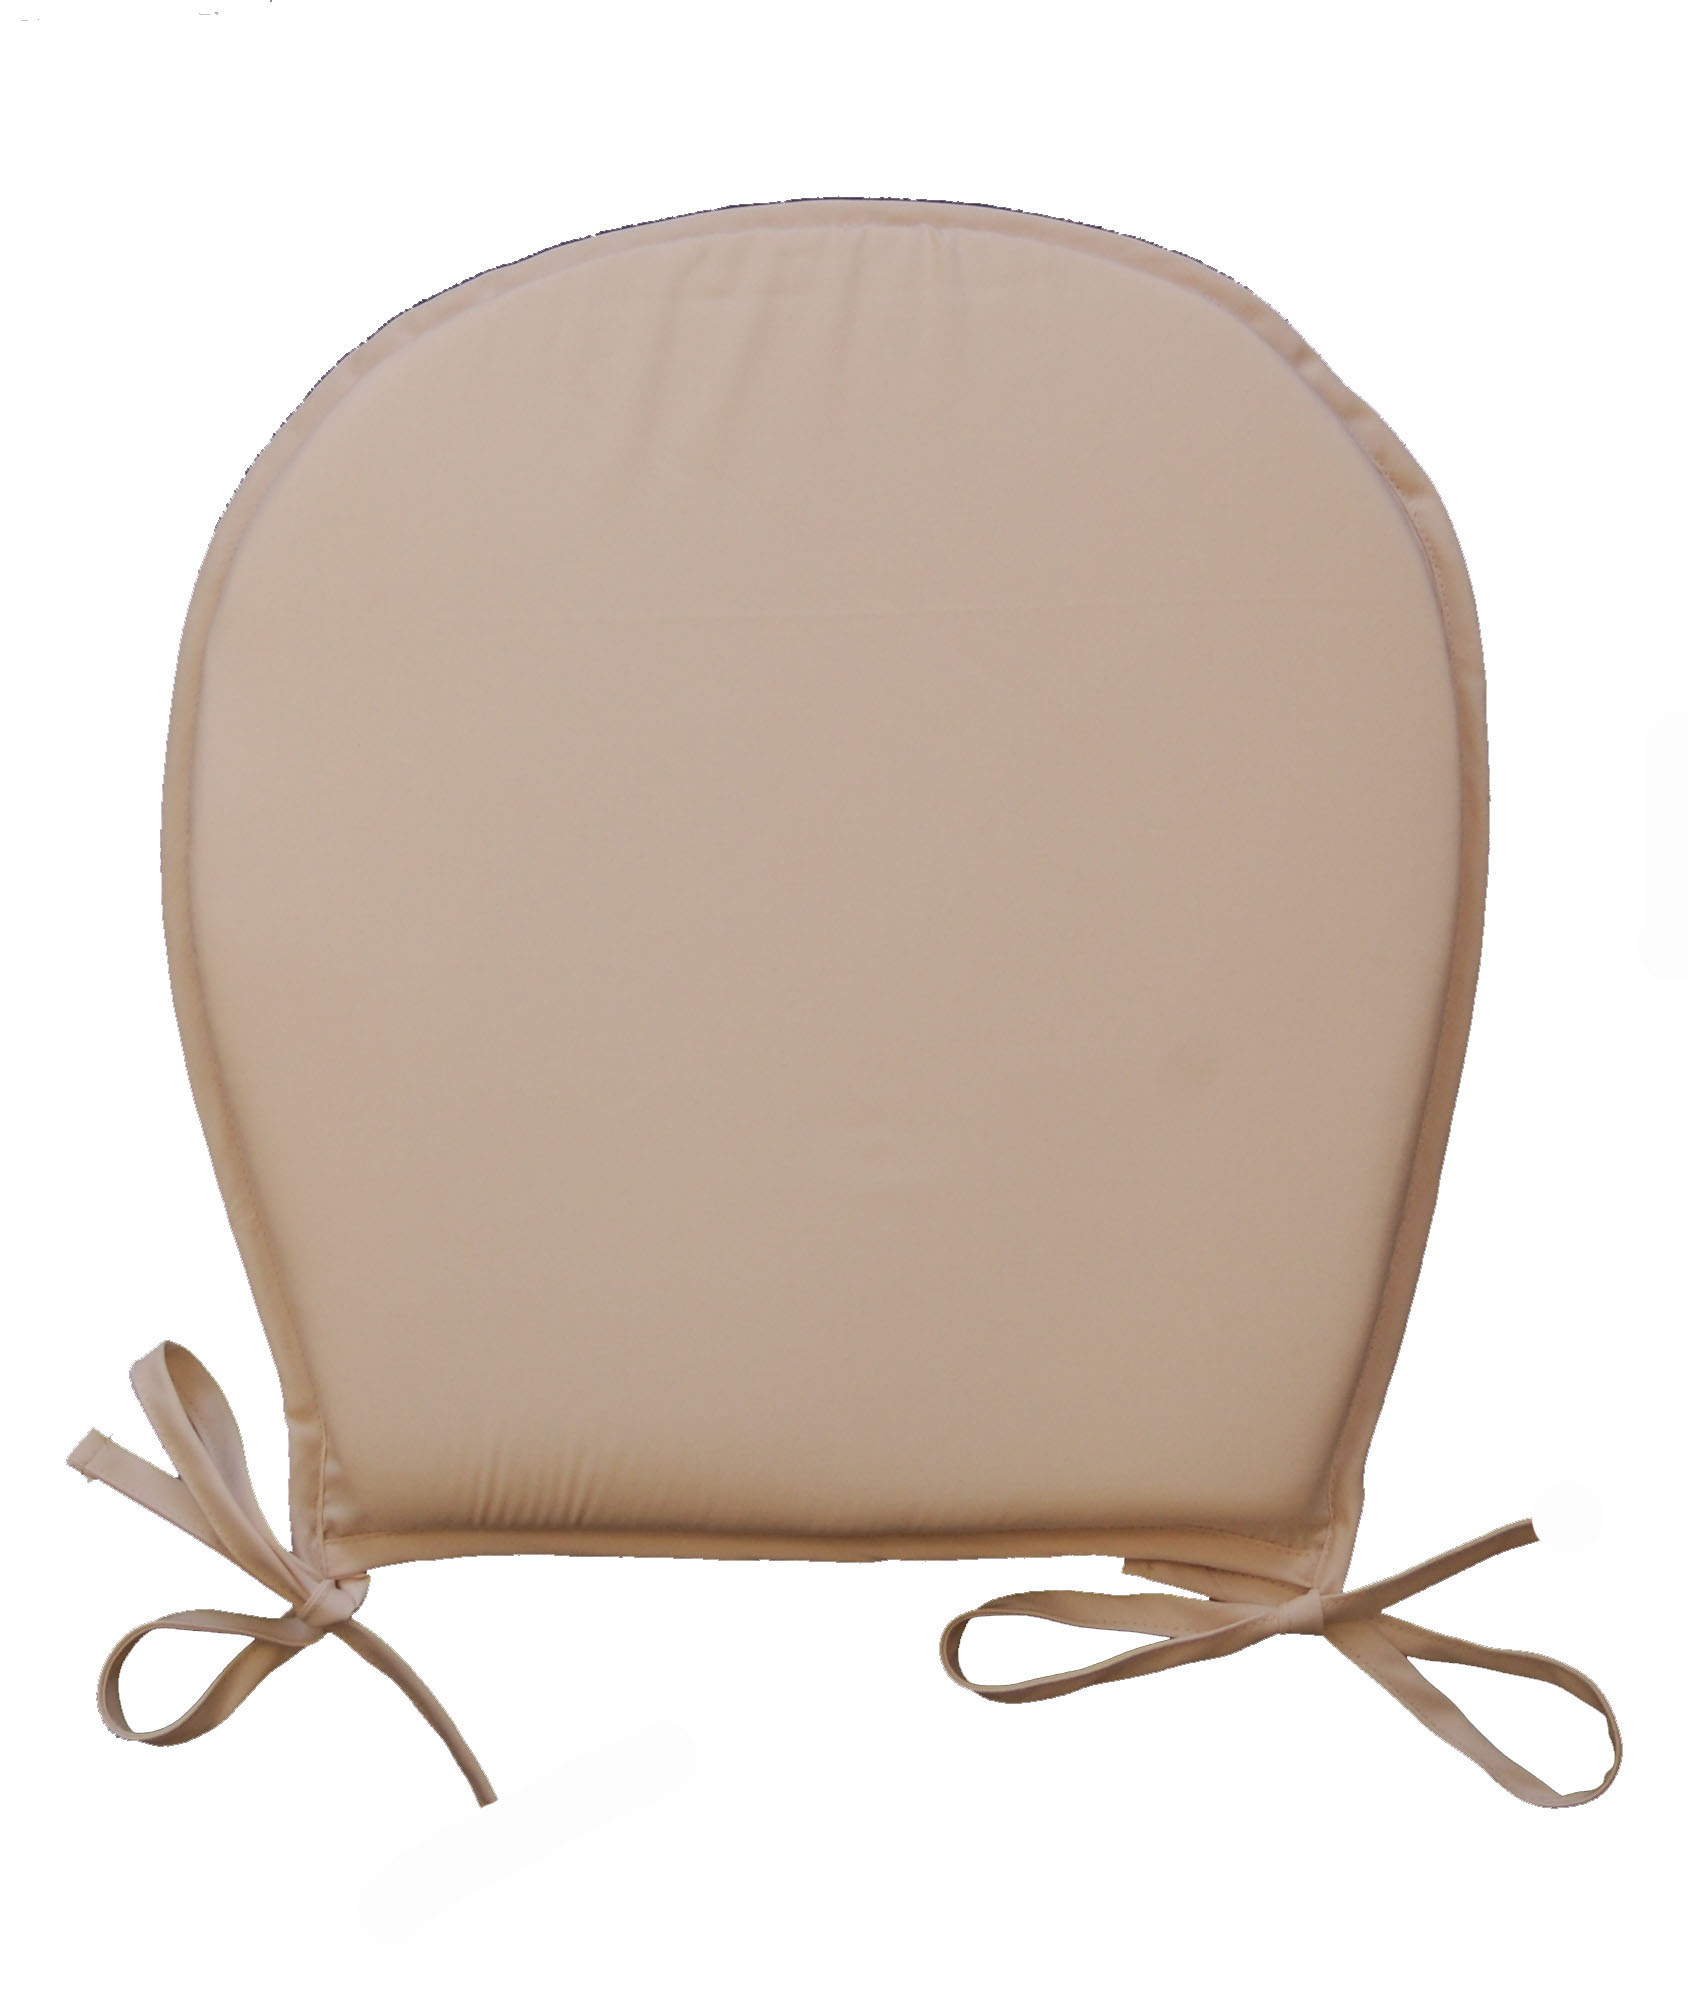 round chair pad orange reception chairs seat pads plain kitchen garden furniture